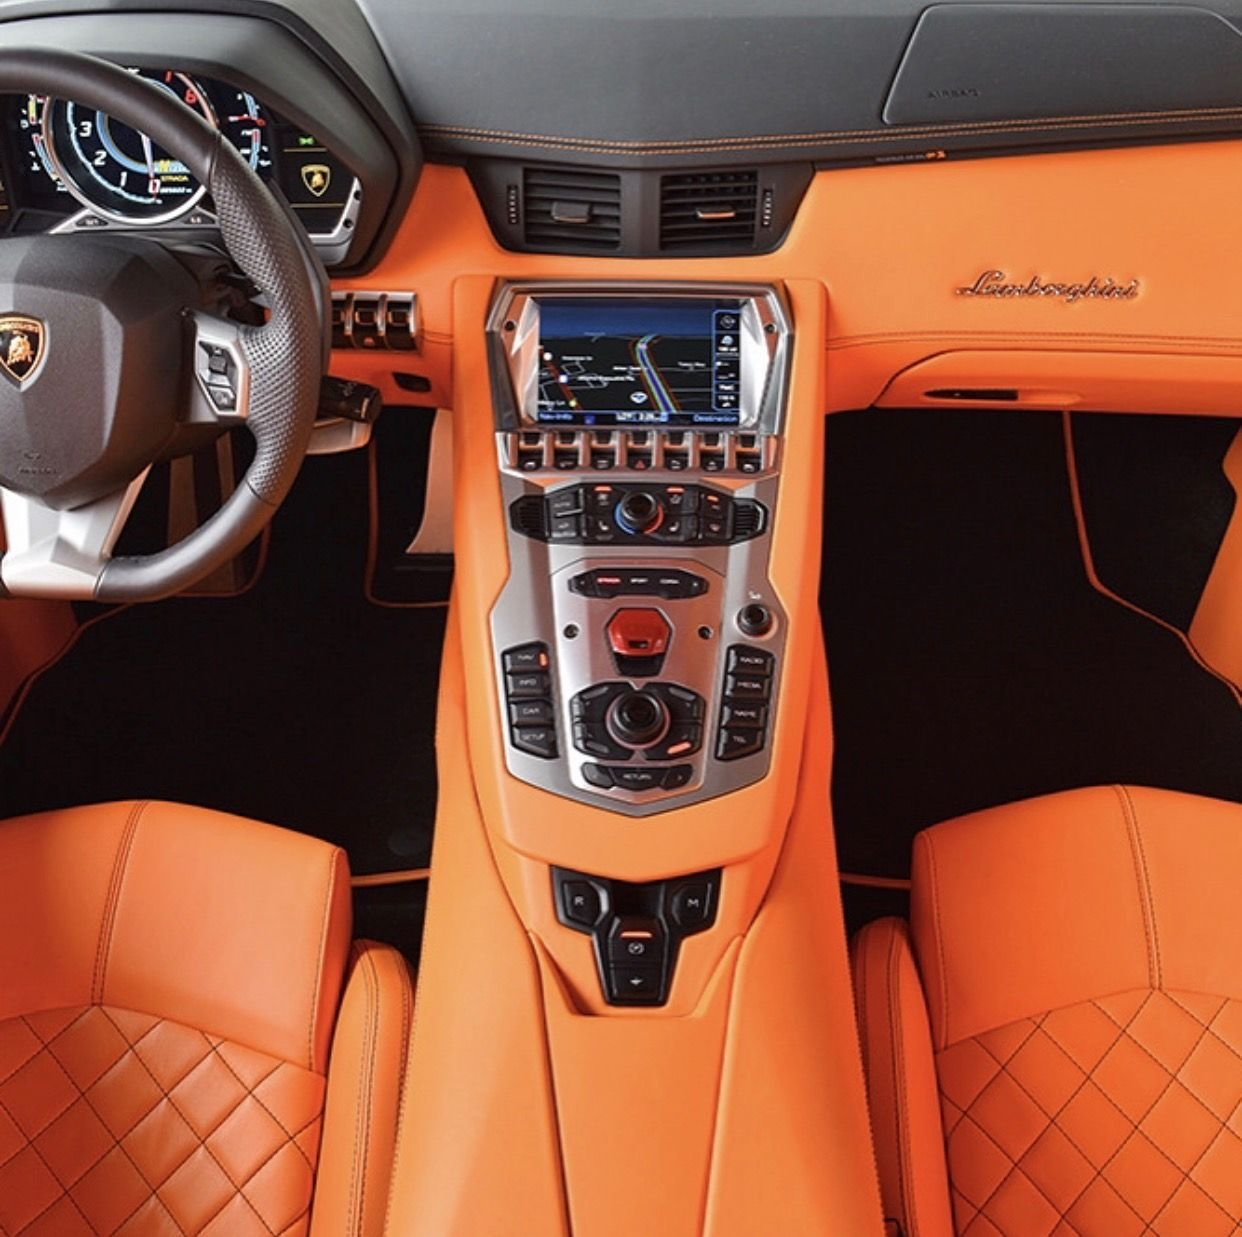 New An Orange Leather Interior From A Lamborghini Aventador On This Month